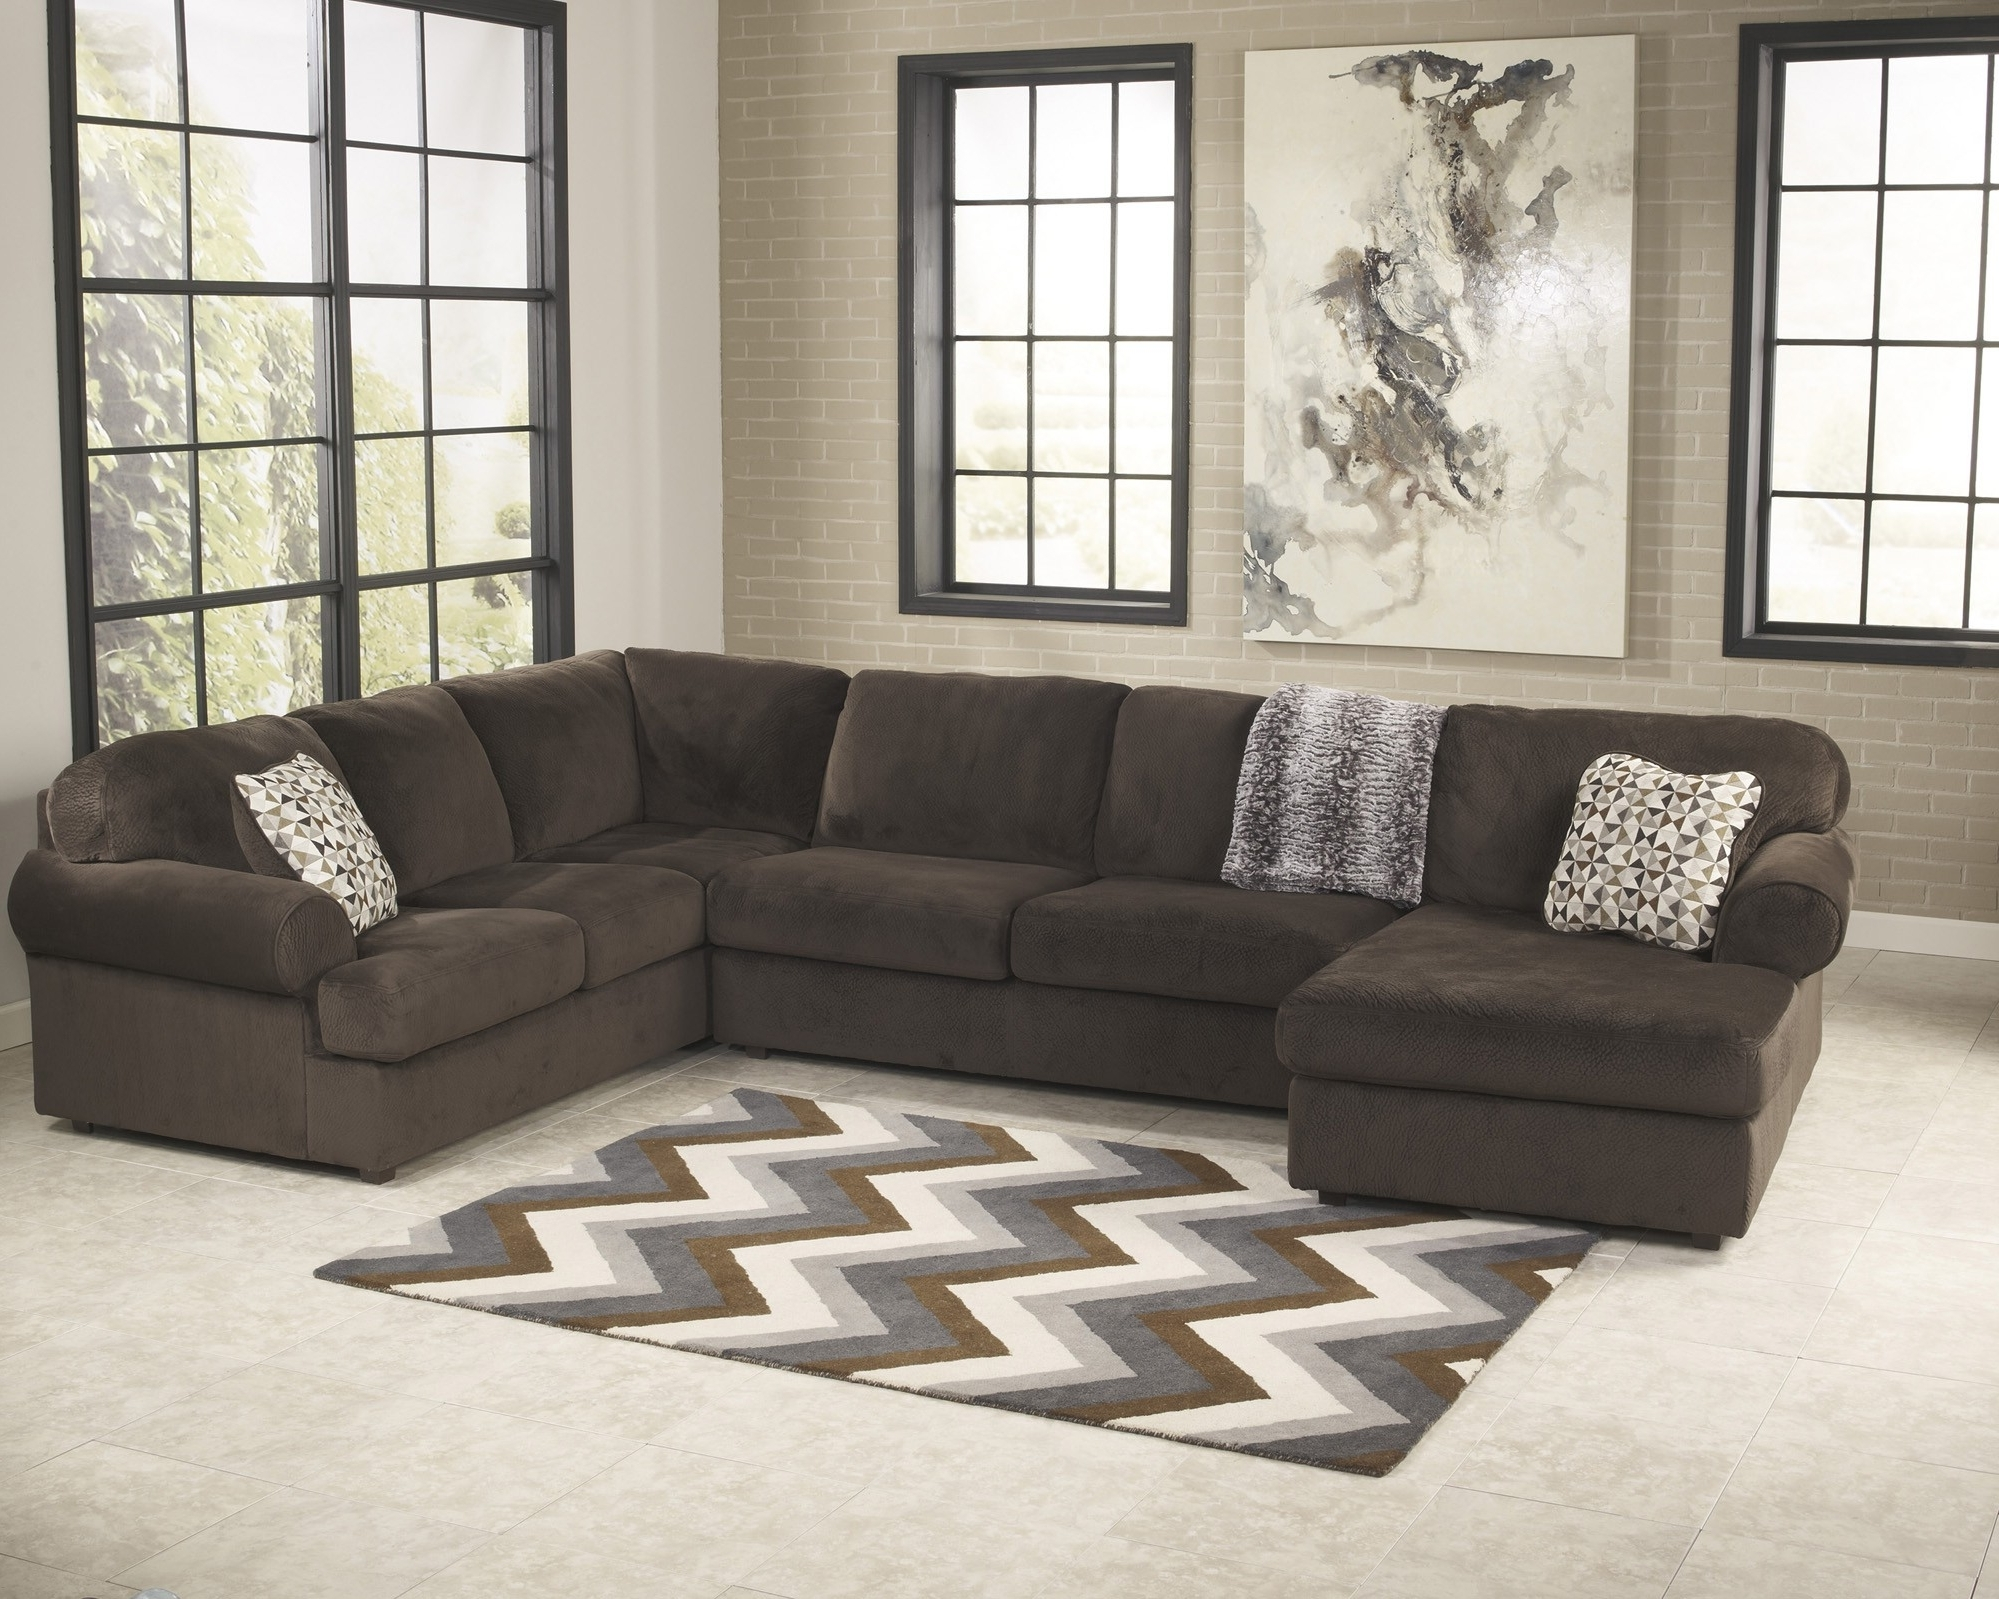 Jessa Place Chocolate 3 Piece Sectional Sofa For $790.00 With Regard To Best And Newest 3 Piece Sectional Sofas With Chaise (Gallery 7 of 15)